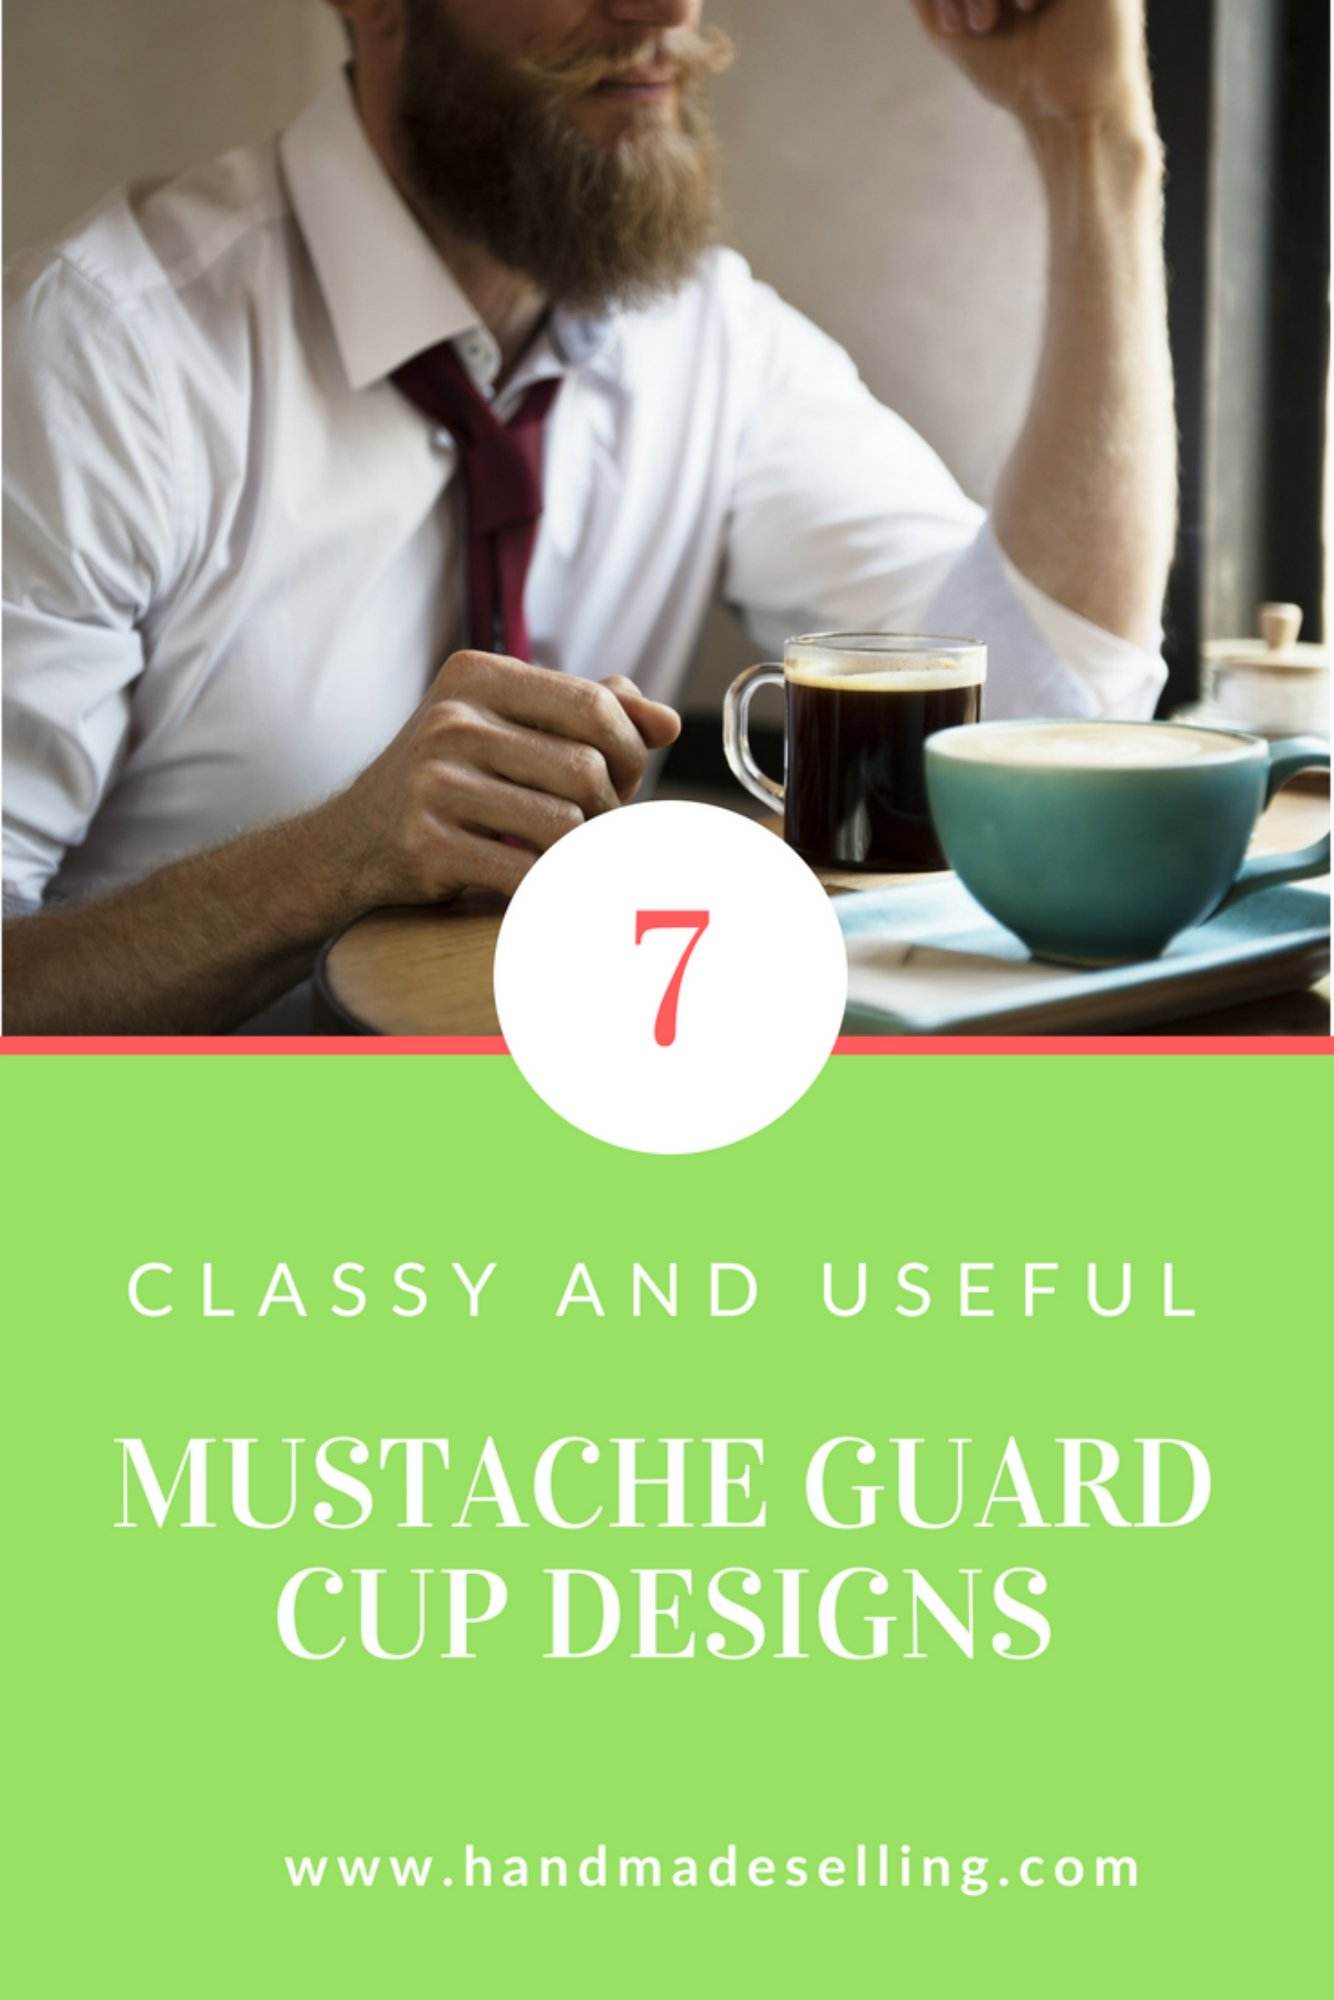 7 Delightful Mustache Guard Cup Designs to Blow Your Mind